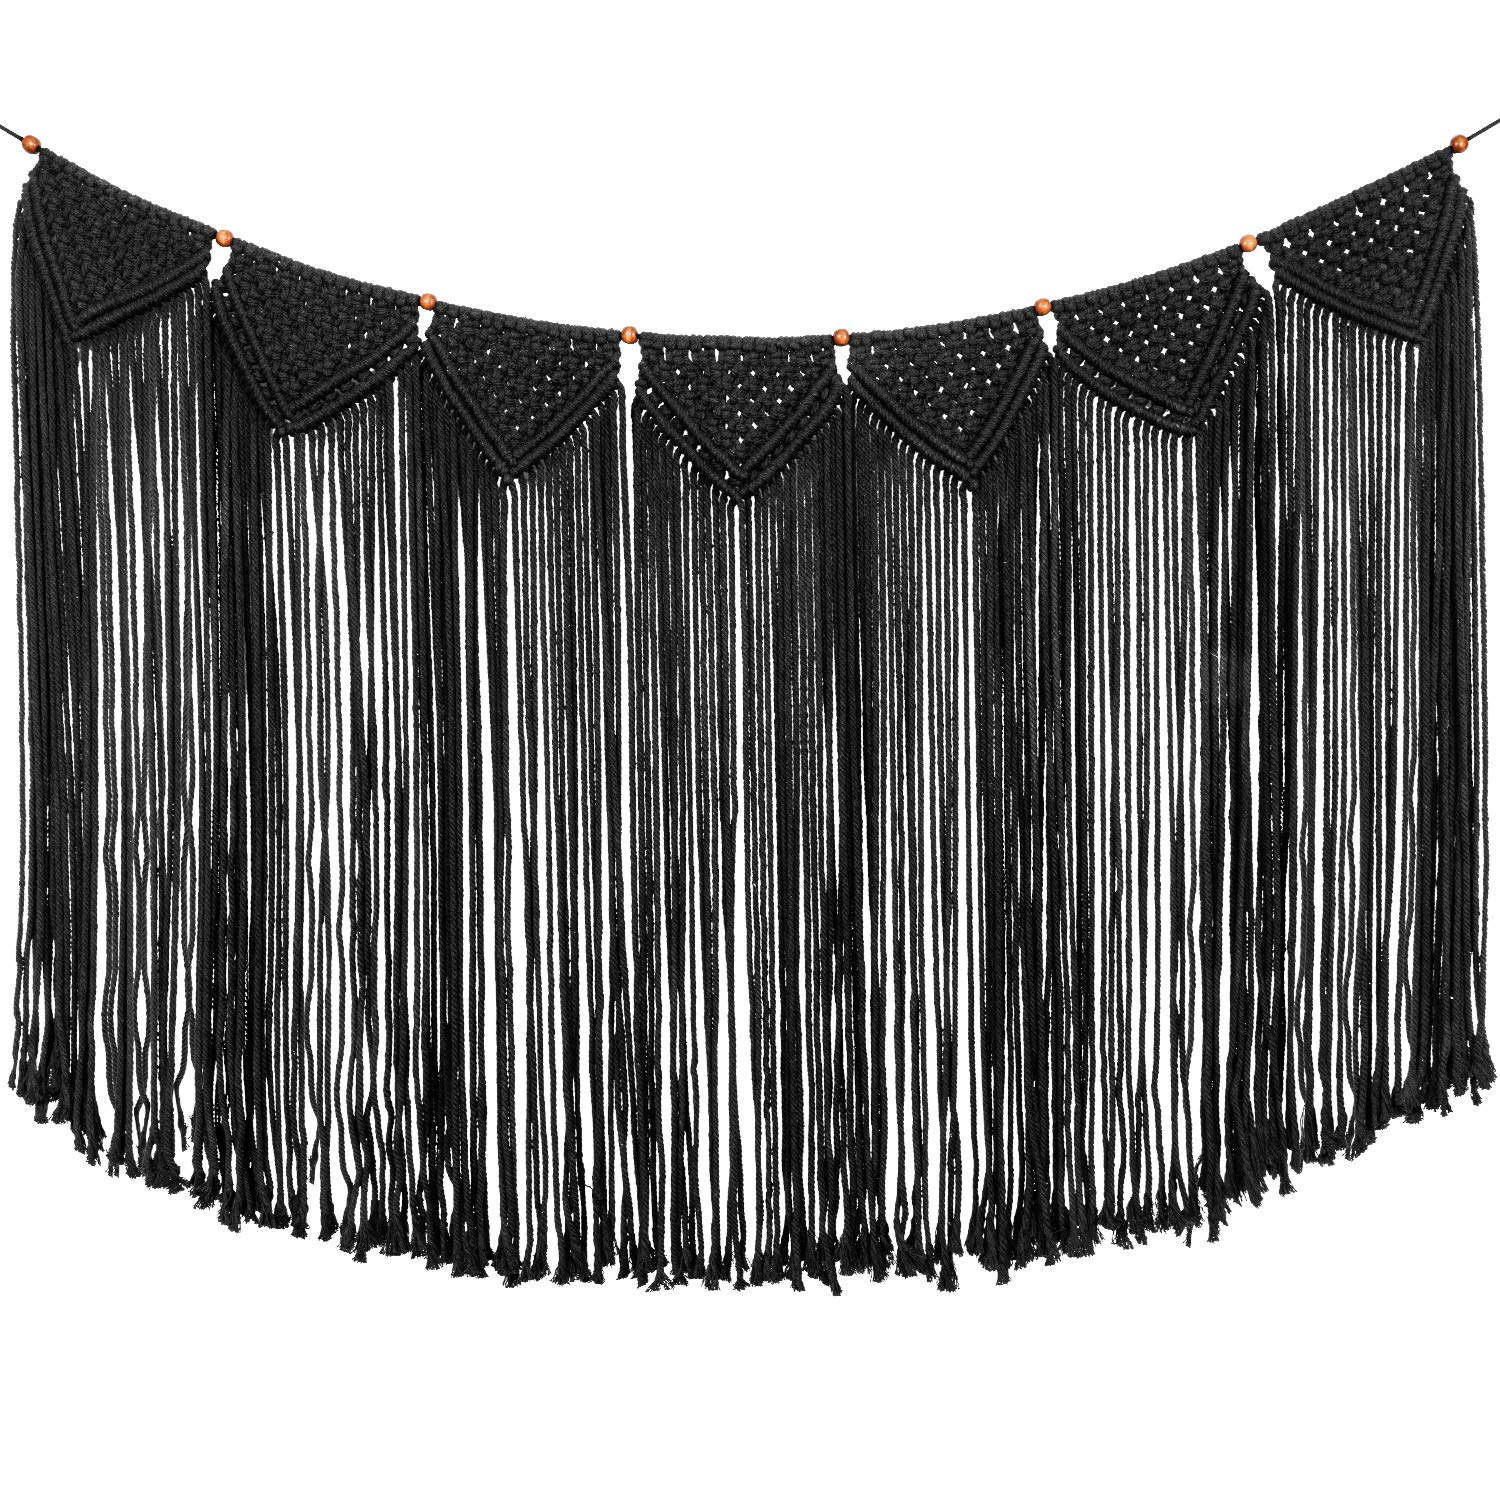 """TIMEYARD Macrame Woven Wall Hanging Curtain Fringe Garland Banner - Boho Shabby Gothic Wall Decor - Apartment Dorm Living Room Bedroom Baby Nursery Art - Party Backdrop Decoration 47"""" L x 28"""" W"""